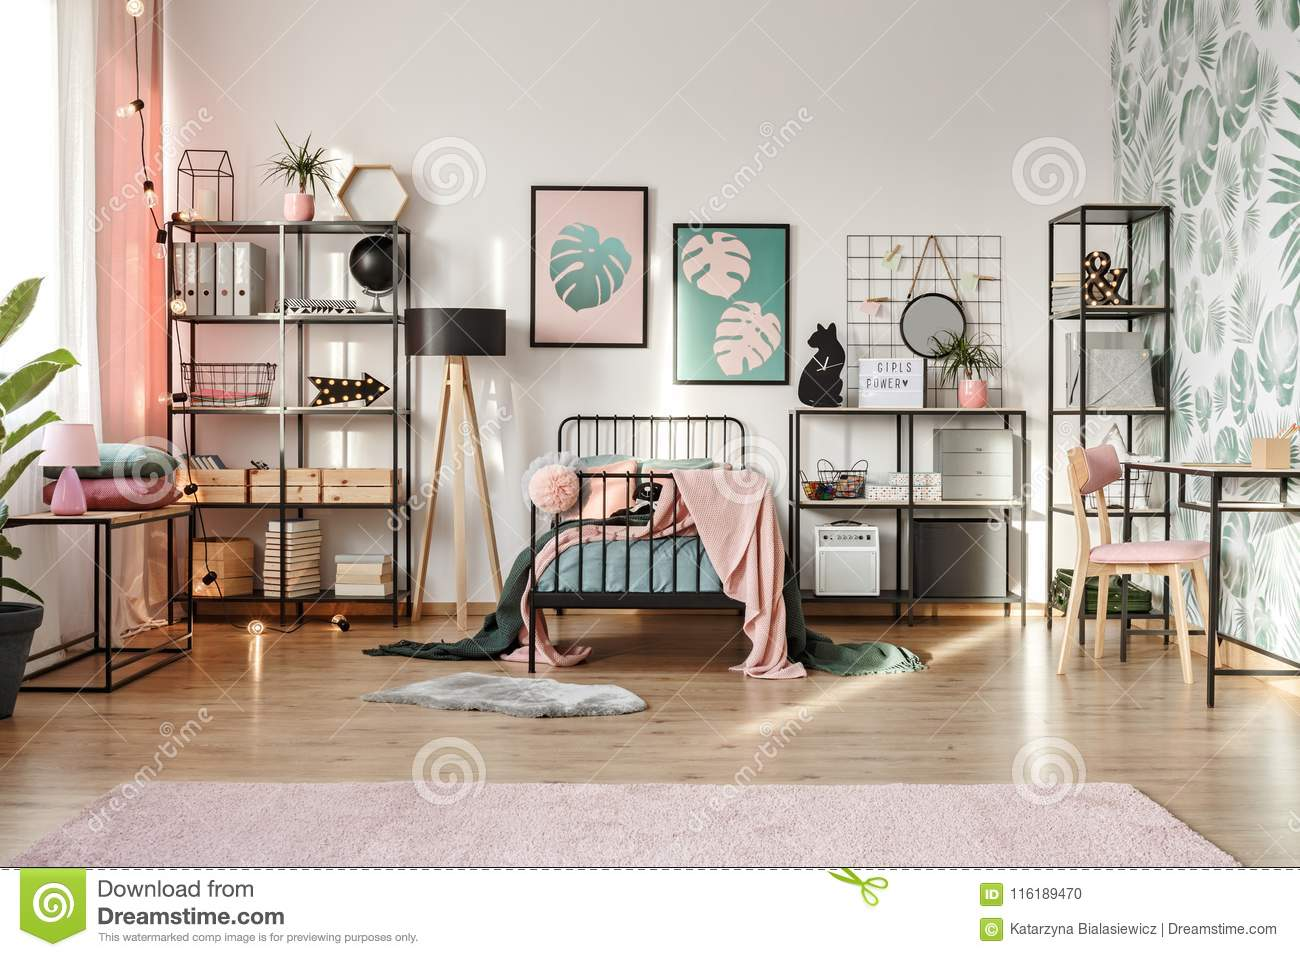 Pink Decorations In Botanical Bedroom Stock Photo - Image of ...